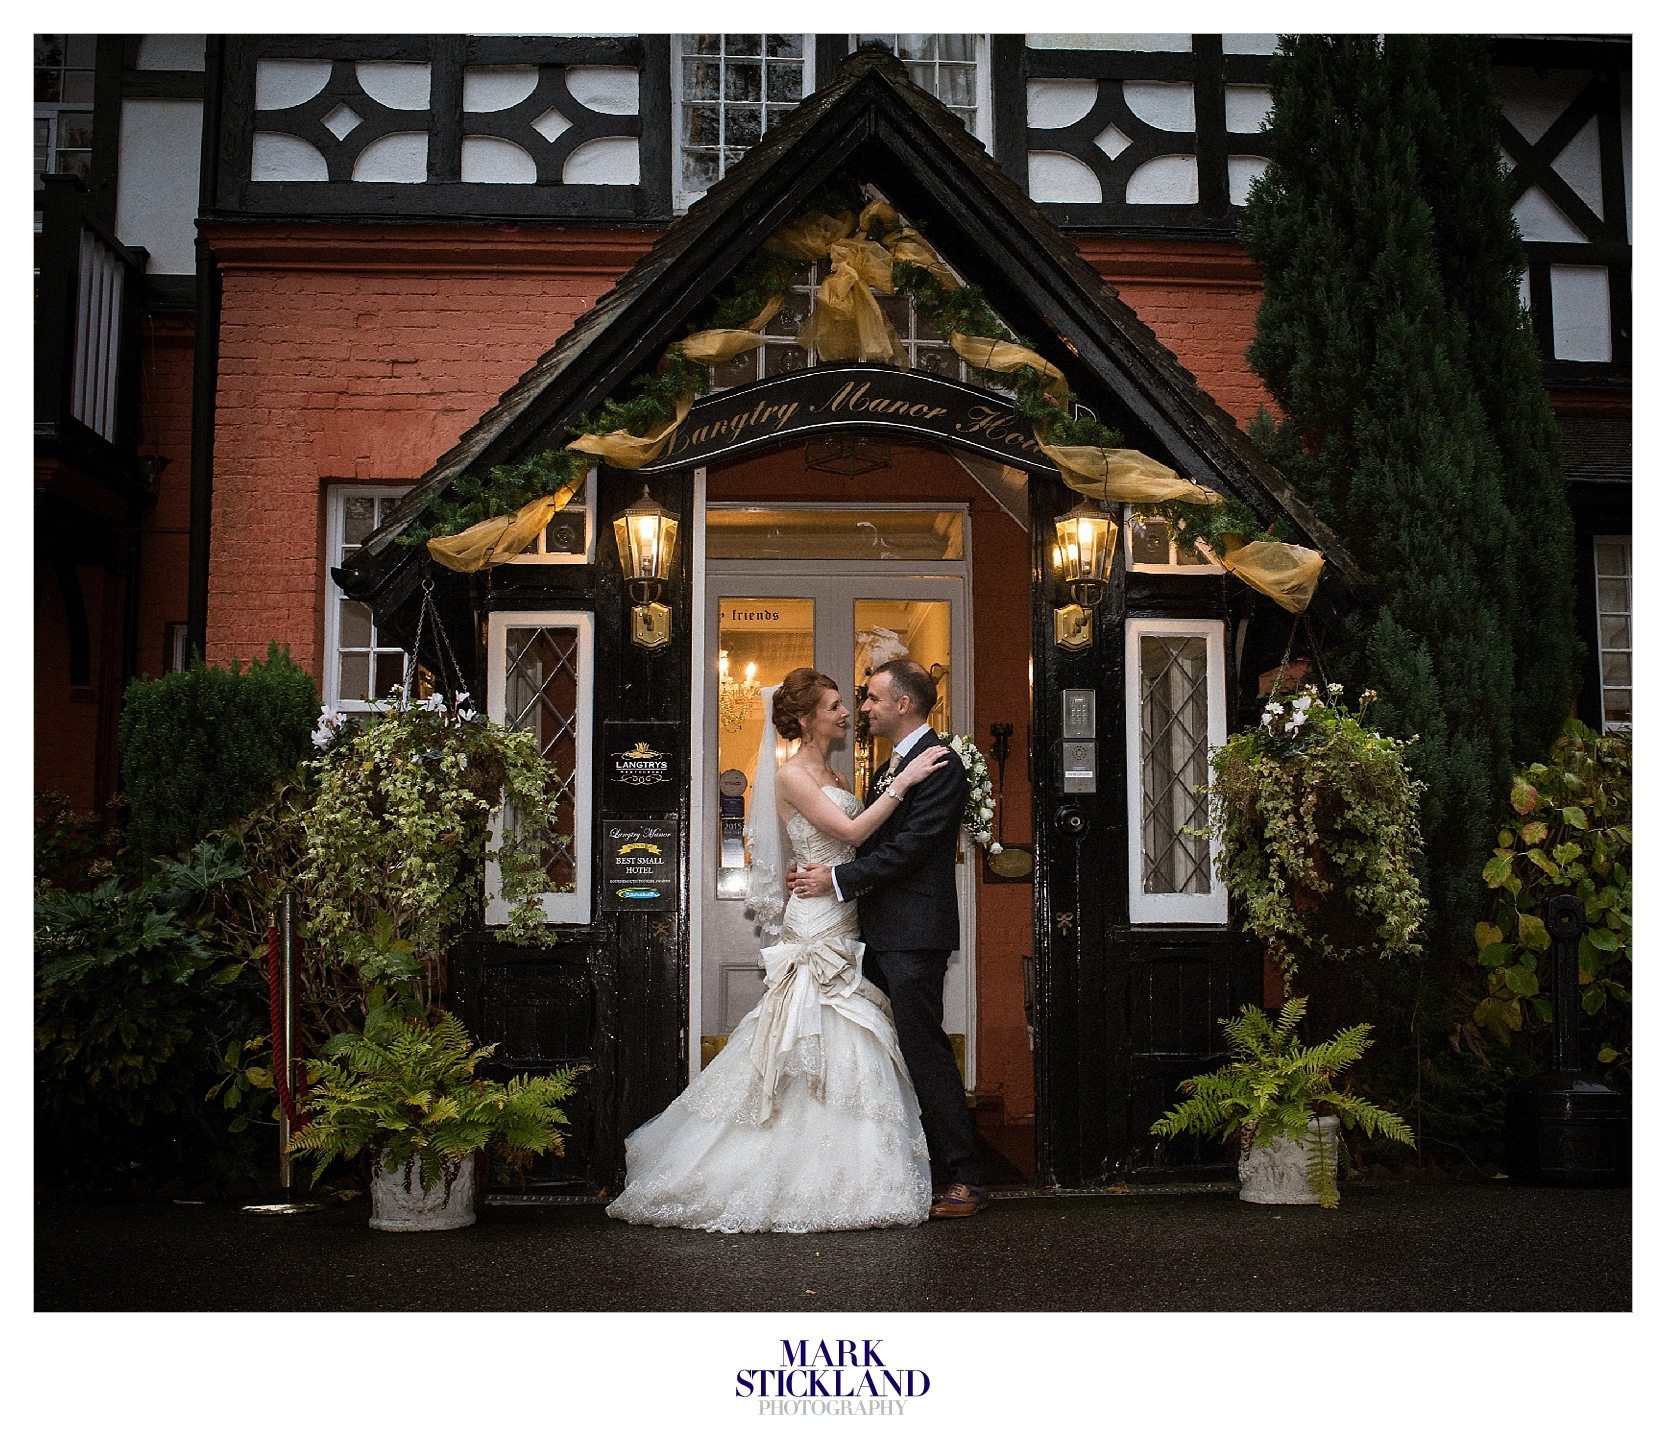 langtry manor hotel_wedding_bournemouth_dorset_mark stickland photography._0013